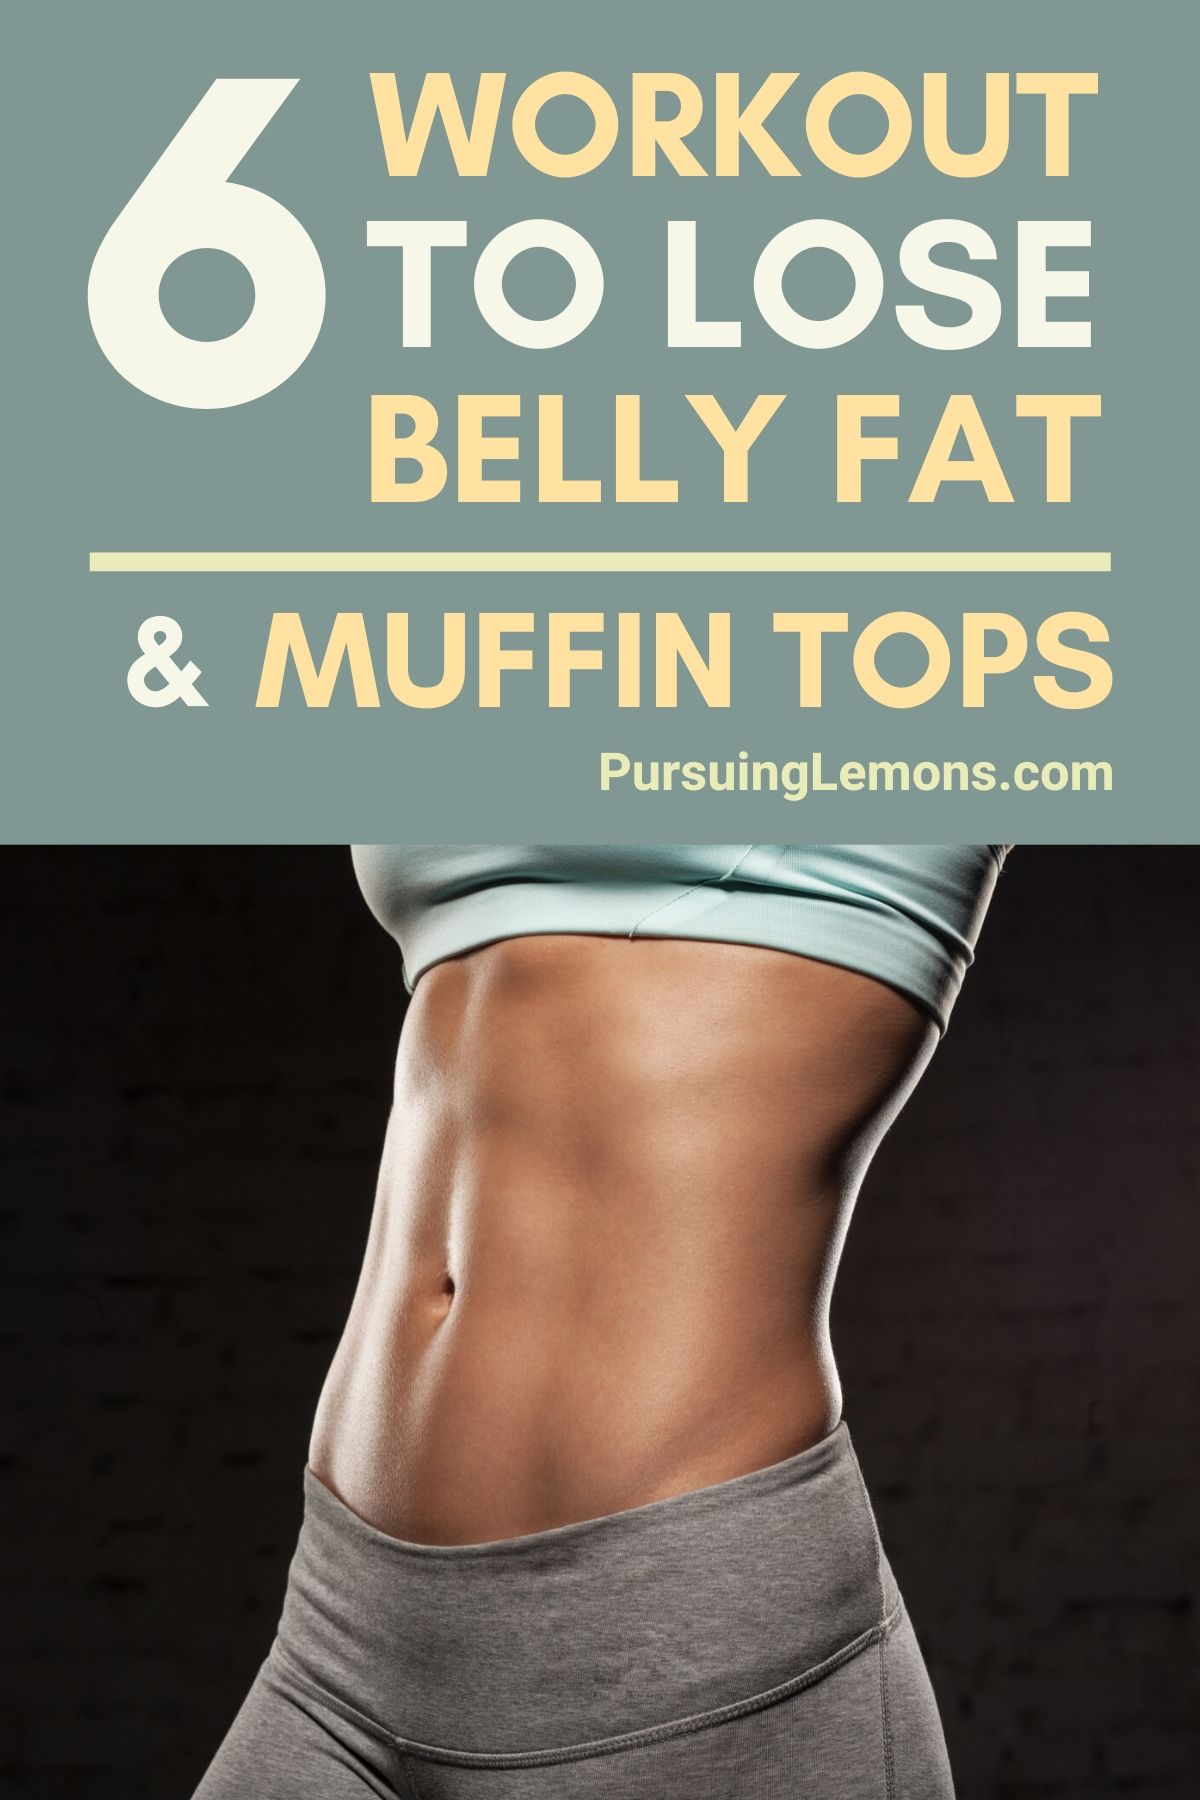 6 Workouts To Lose Belly Fats and Reduce Muffin Tops | Looking for a workout routine to lose that stubborn body fat? Here are some core exercises you can do at home! #workout #workoutathome #fitness